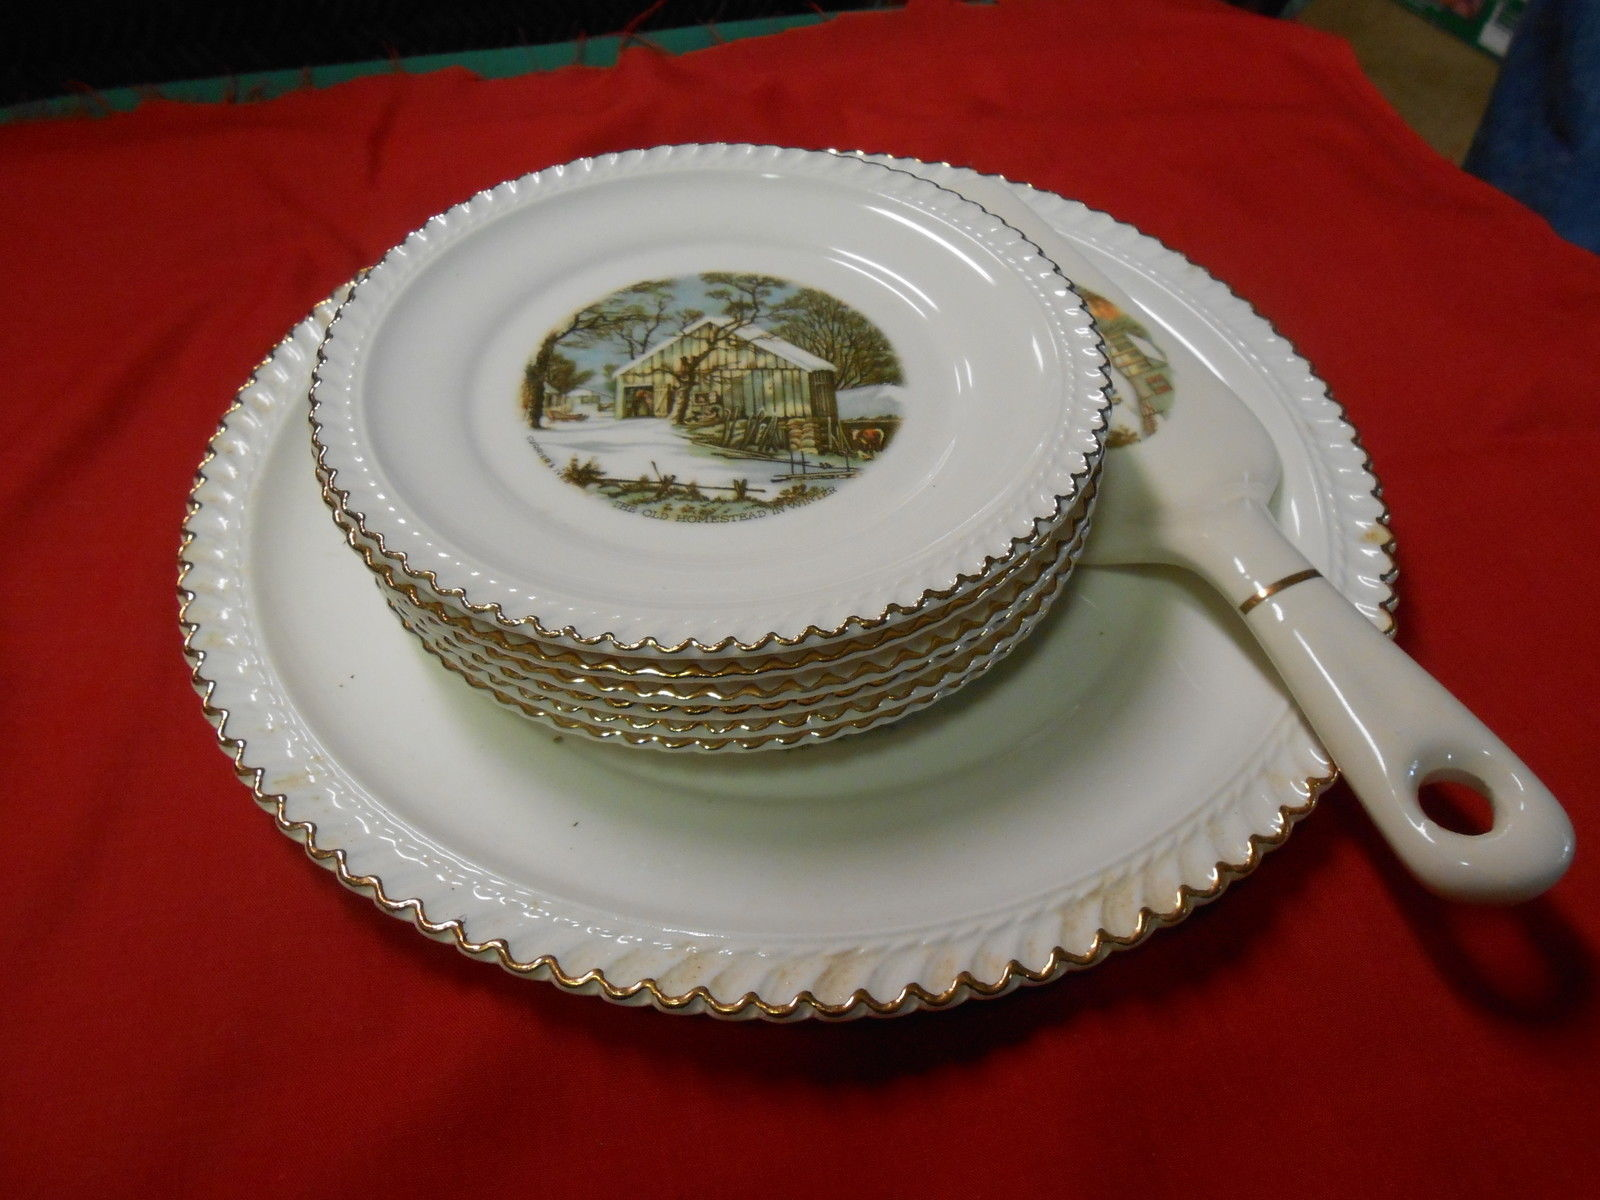 Great Collectable Vintage Harkerware and similar items